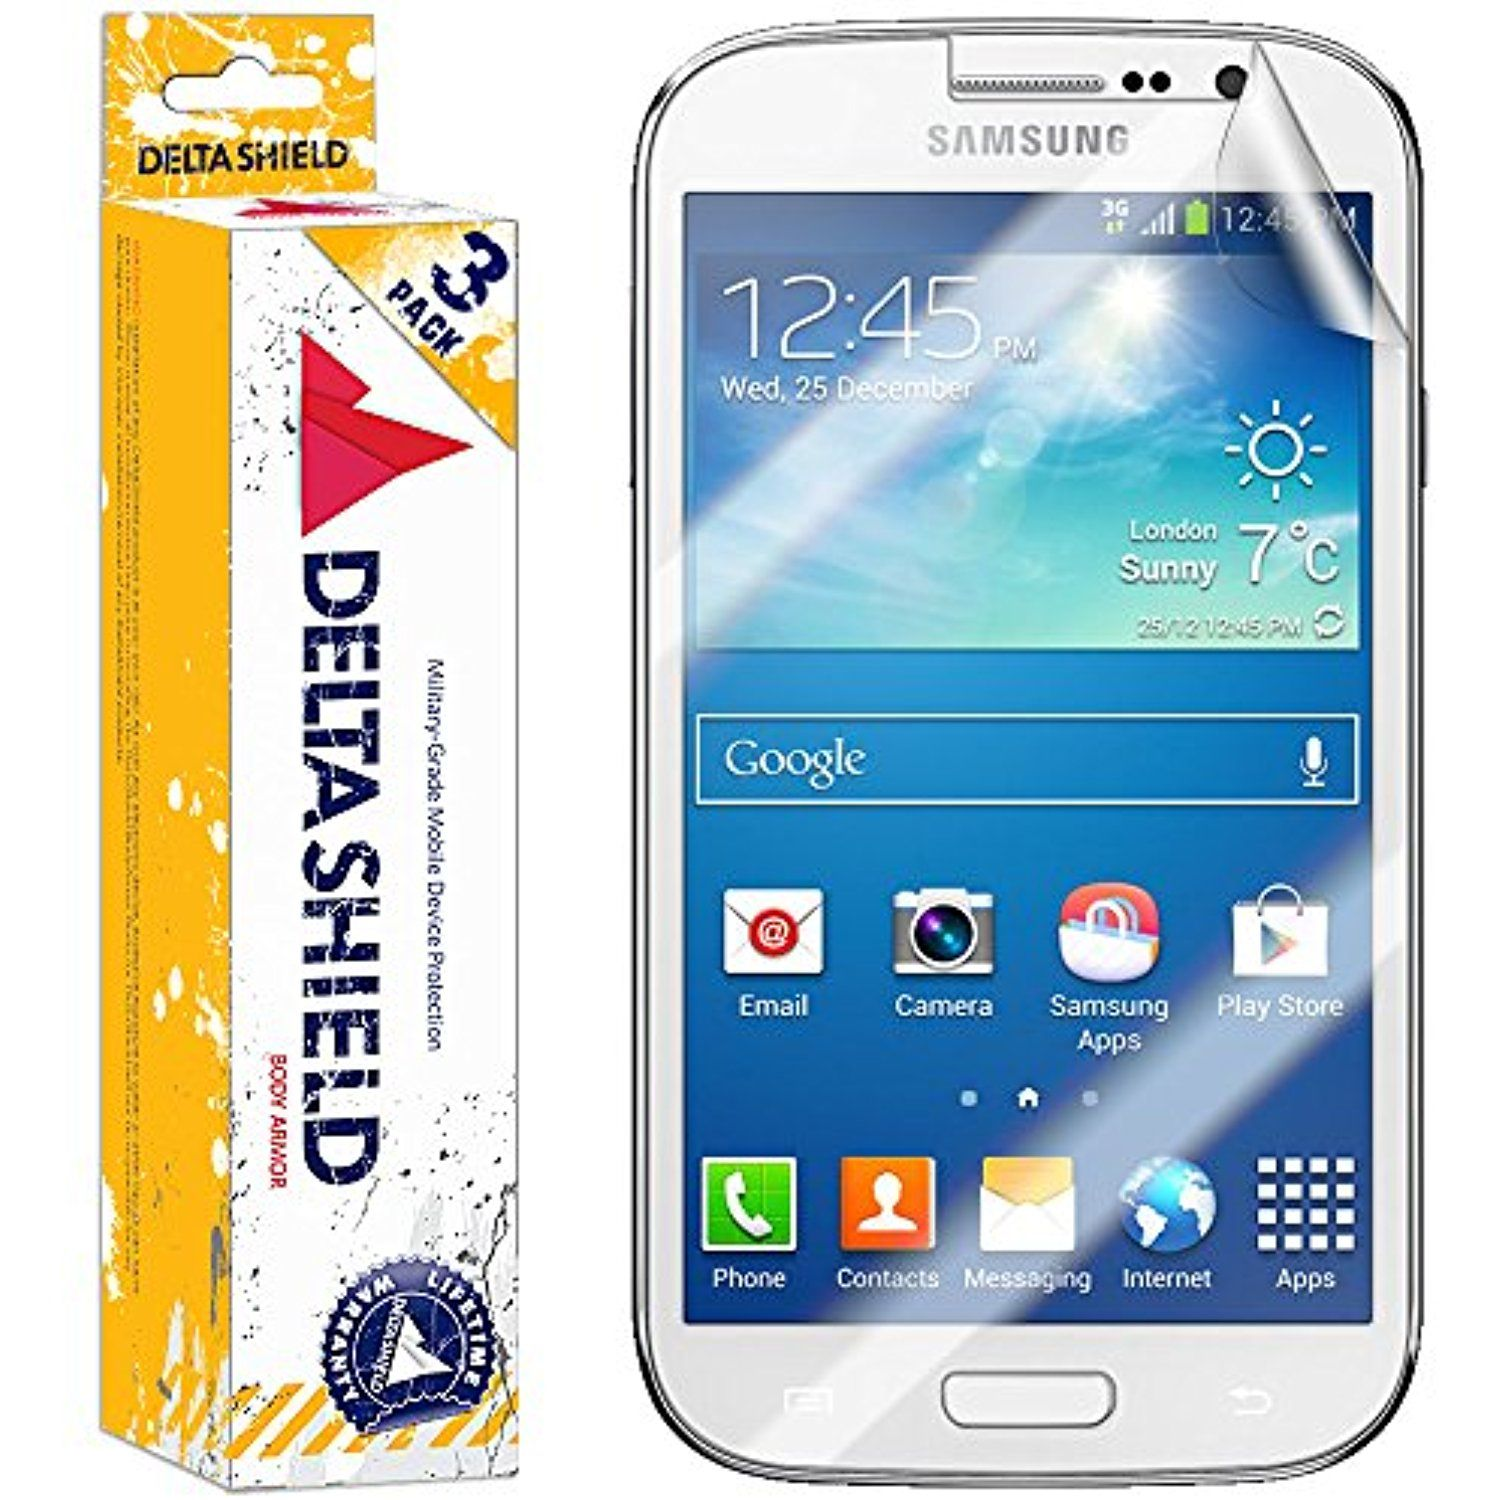 DeltaShield BodyArmor Samsung Galaxy Grand Neo Screen Protector Premium HD Ultra Clear Cover Shield w Lifetime Replacement Anti Bubble